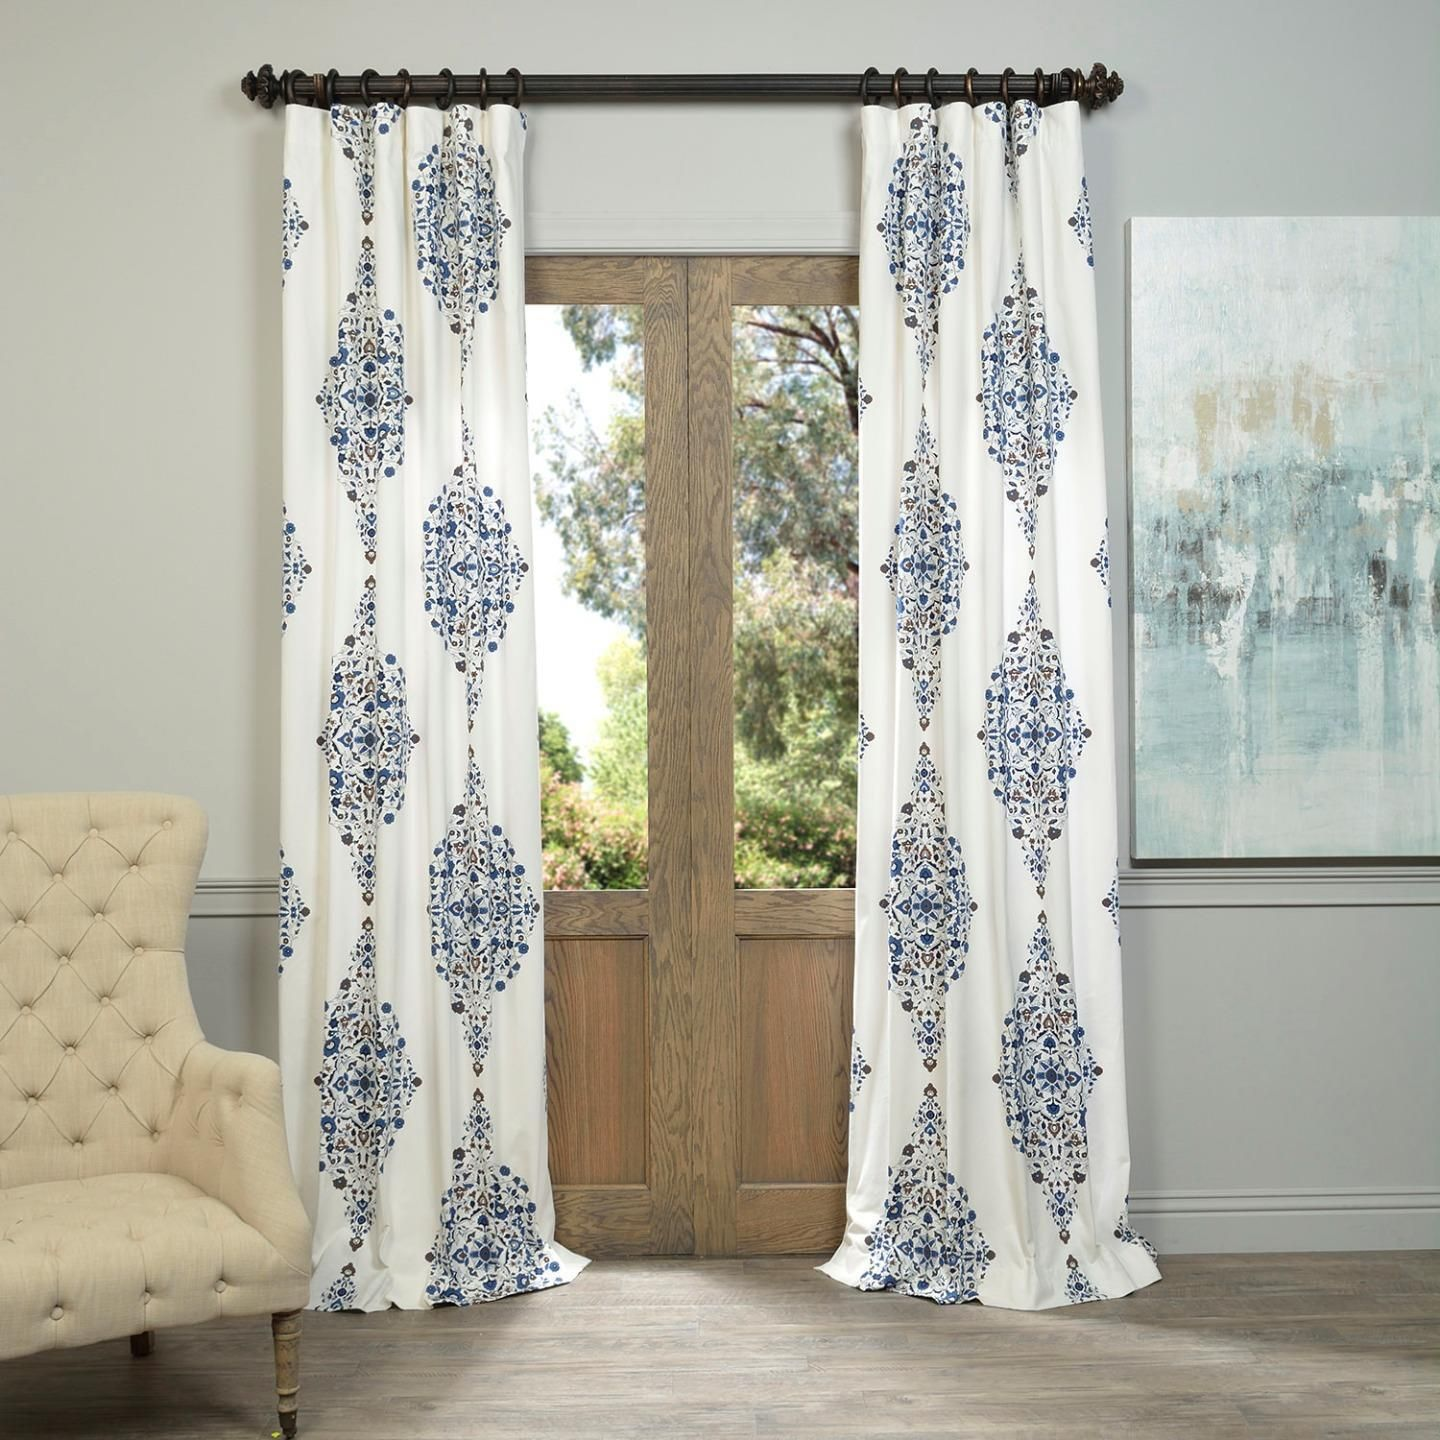 Complete your decor with these elegant Kerala curtain panels from ... for Bamboo Curtains Kerala  575lpg